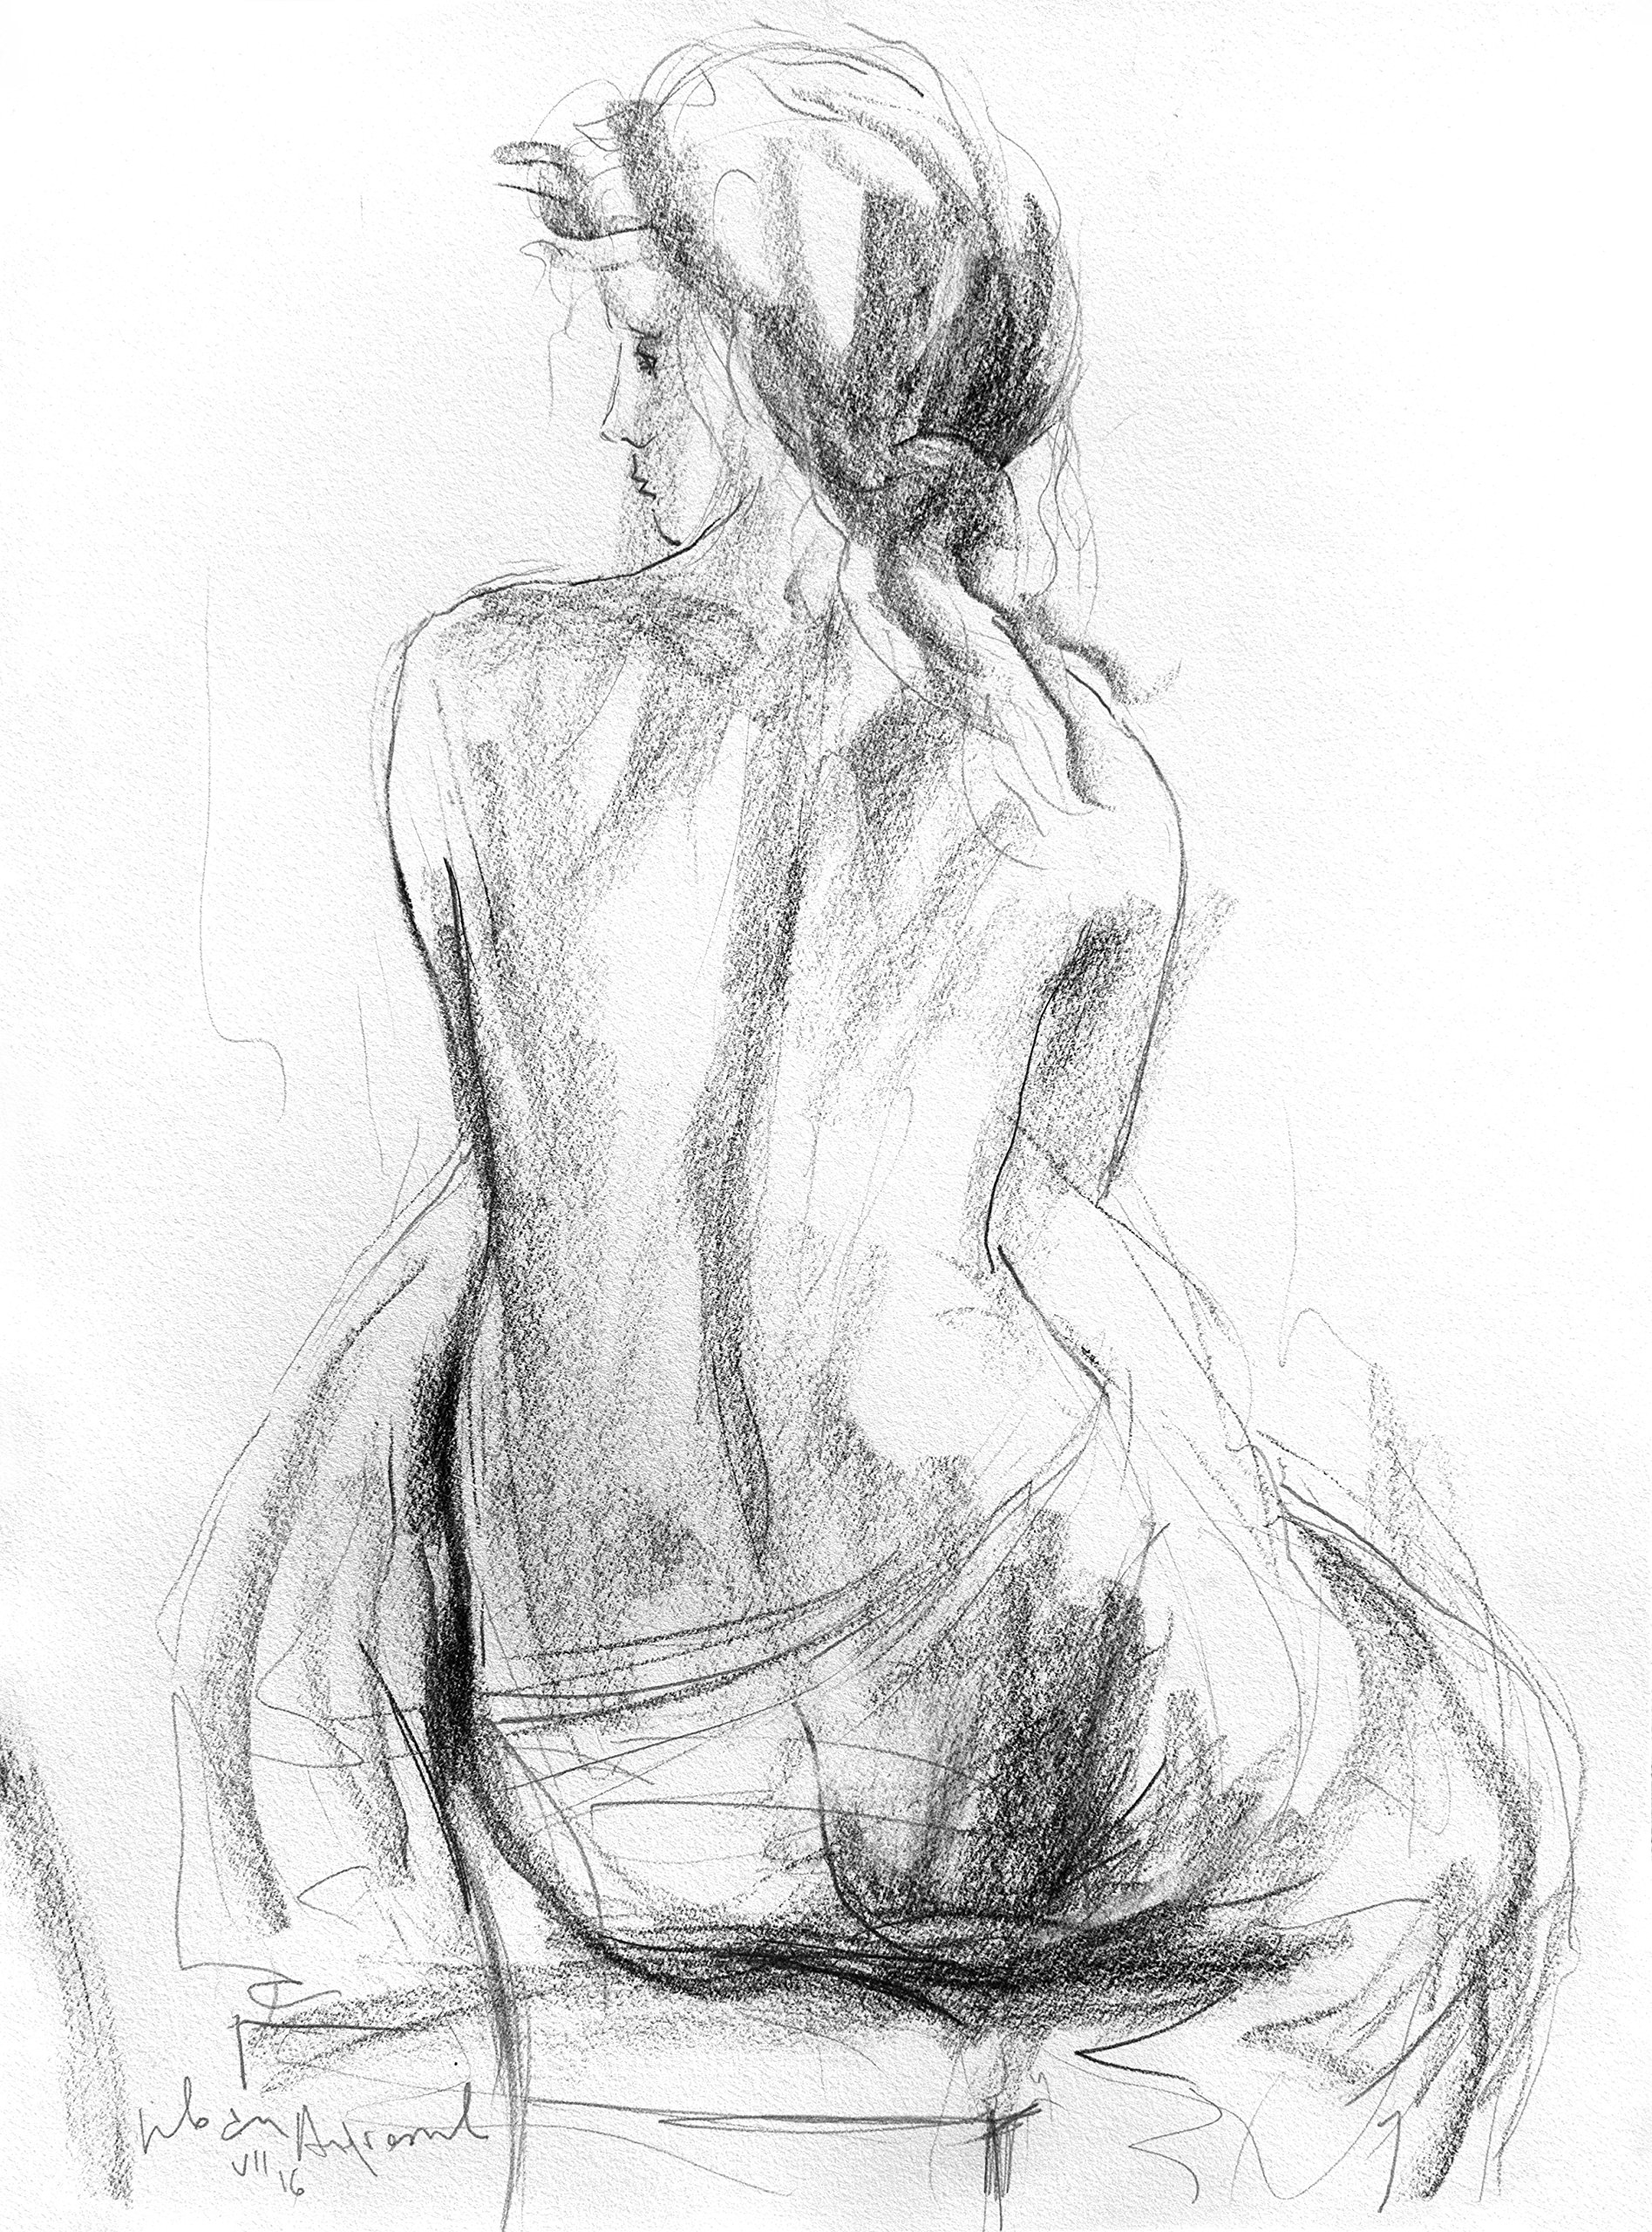 Original charcoal drawing Black and white Artistic sketch Nude Woman Modern Figurative art Wall decor